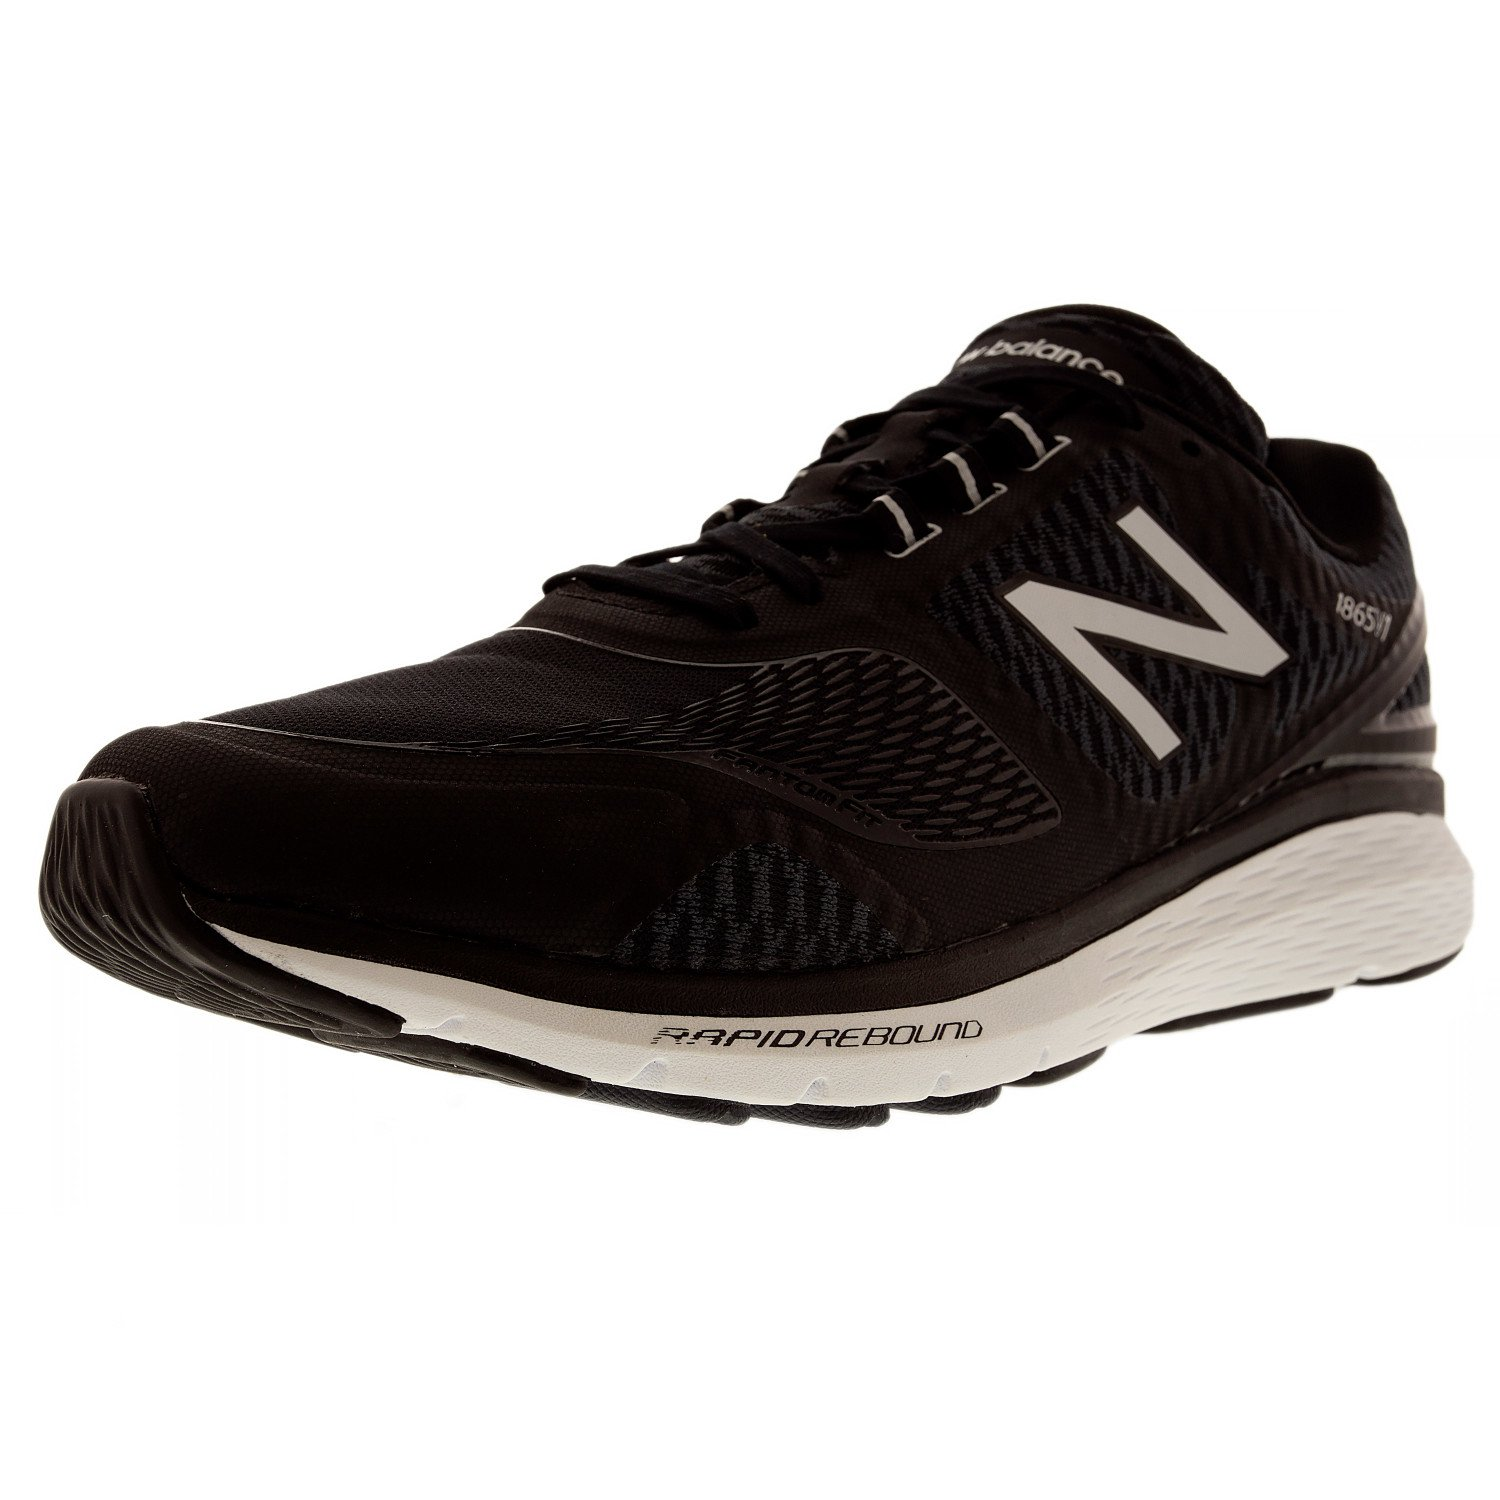 New Balance Men/'s Mw1865 Ankle-High Walking Shoe